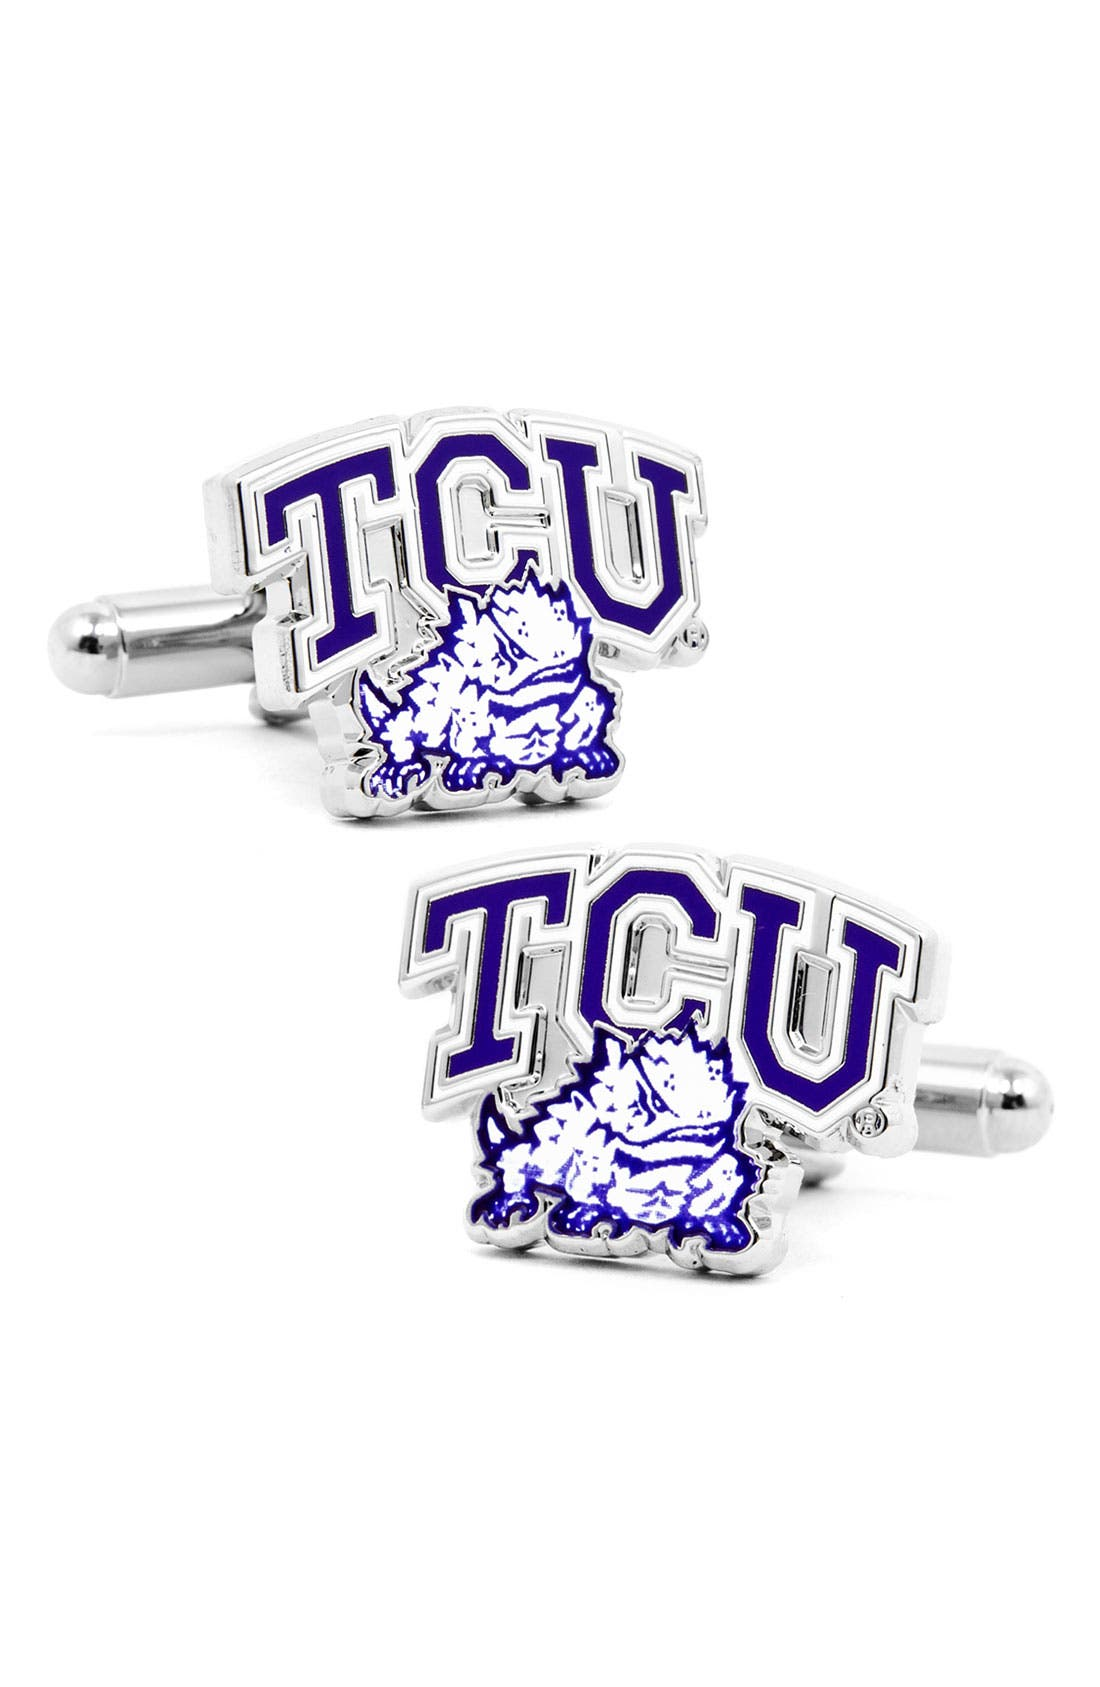 'TCU Horned Frogs' Cuff Links,                         Main,                         color, Purple/ White